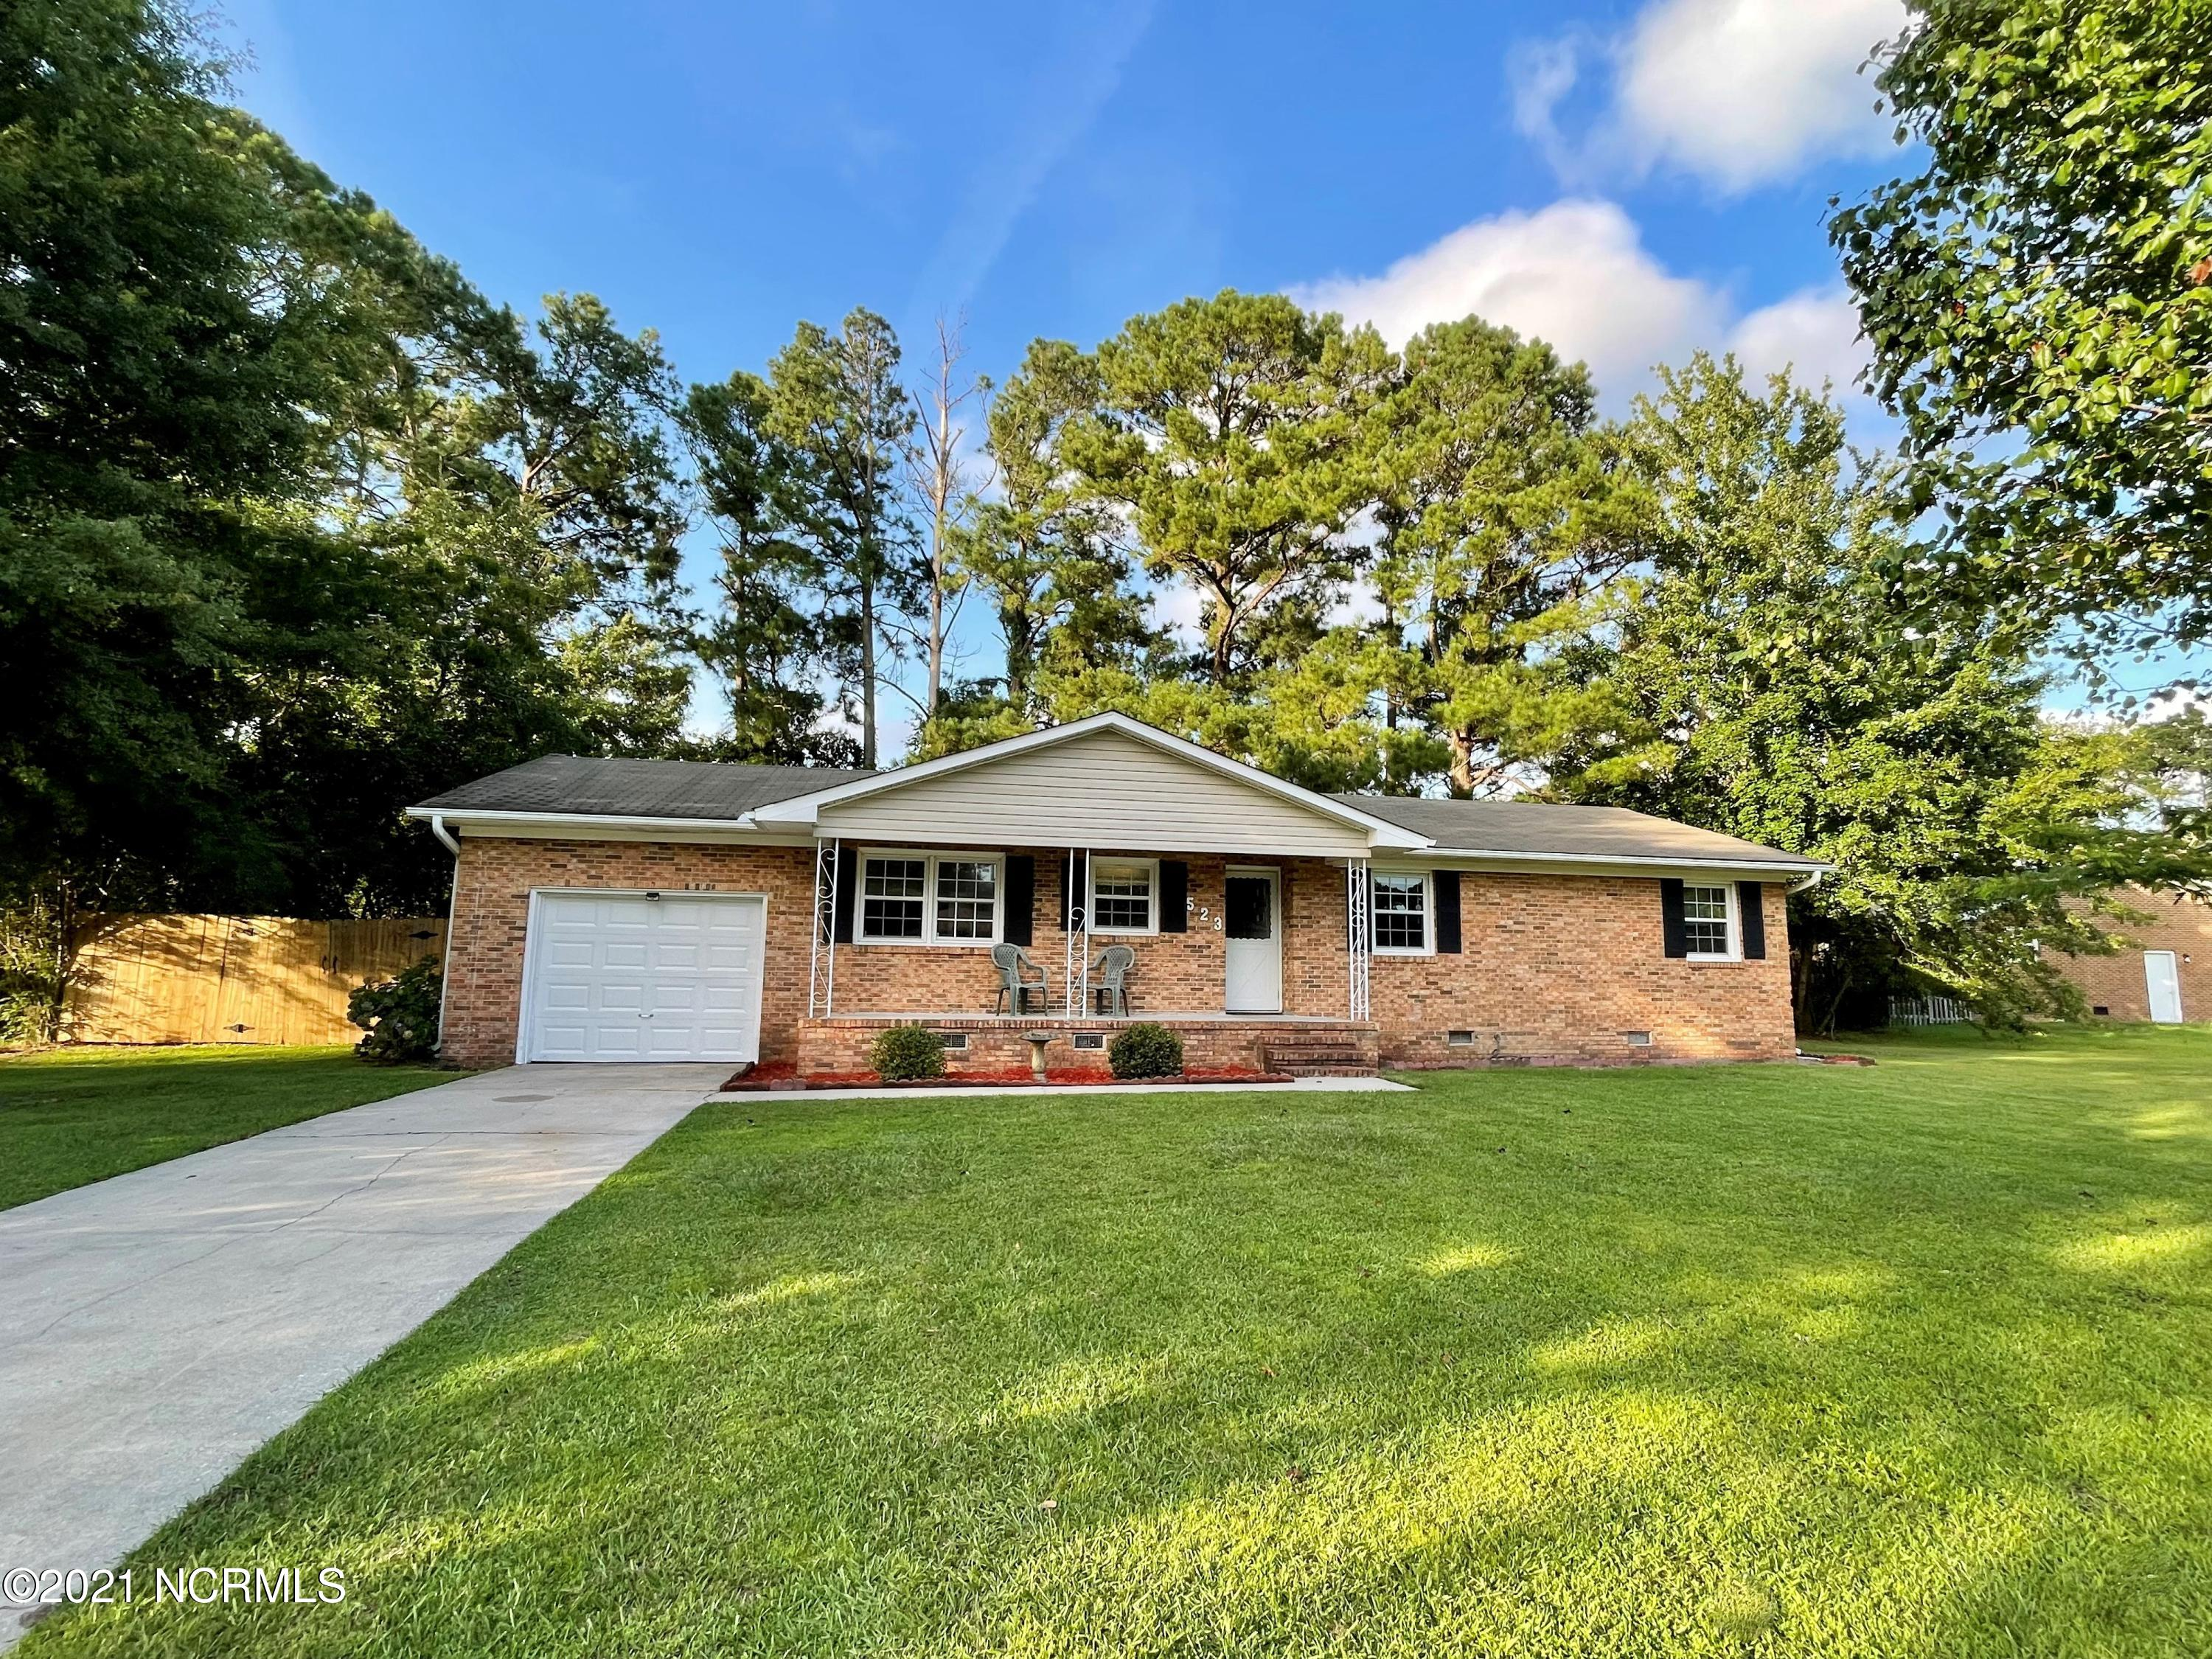 Close to Camp Lejeune and New River Air Station this 4 bedroom, two full bath home is located in a well established neighborhood of Brynn Marr, close to restaurants, schools, shopping and Onslow Memorial Hospital.  Schedule your showing today.  Sellers have purchased a home warranty from 2-10 for buyers and sellers are also offering $2,000 for buyers to use as they choose.